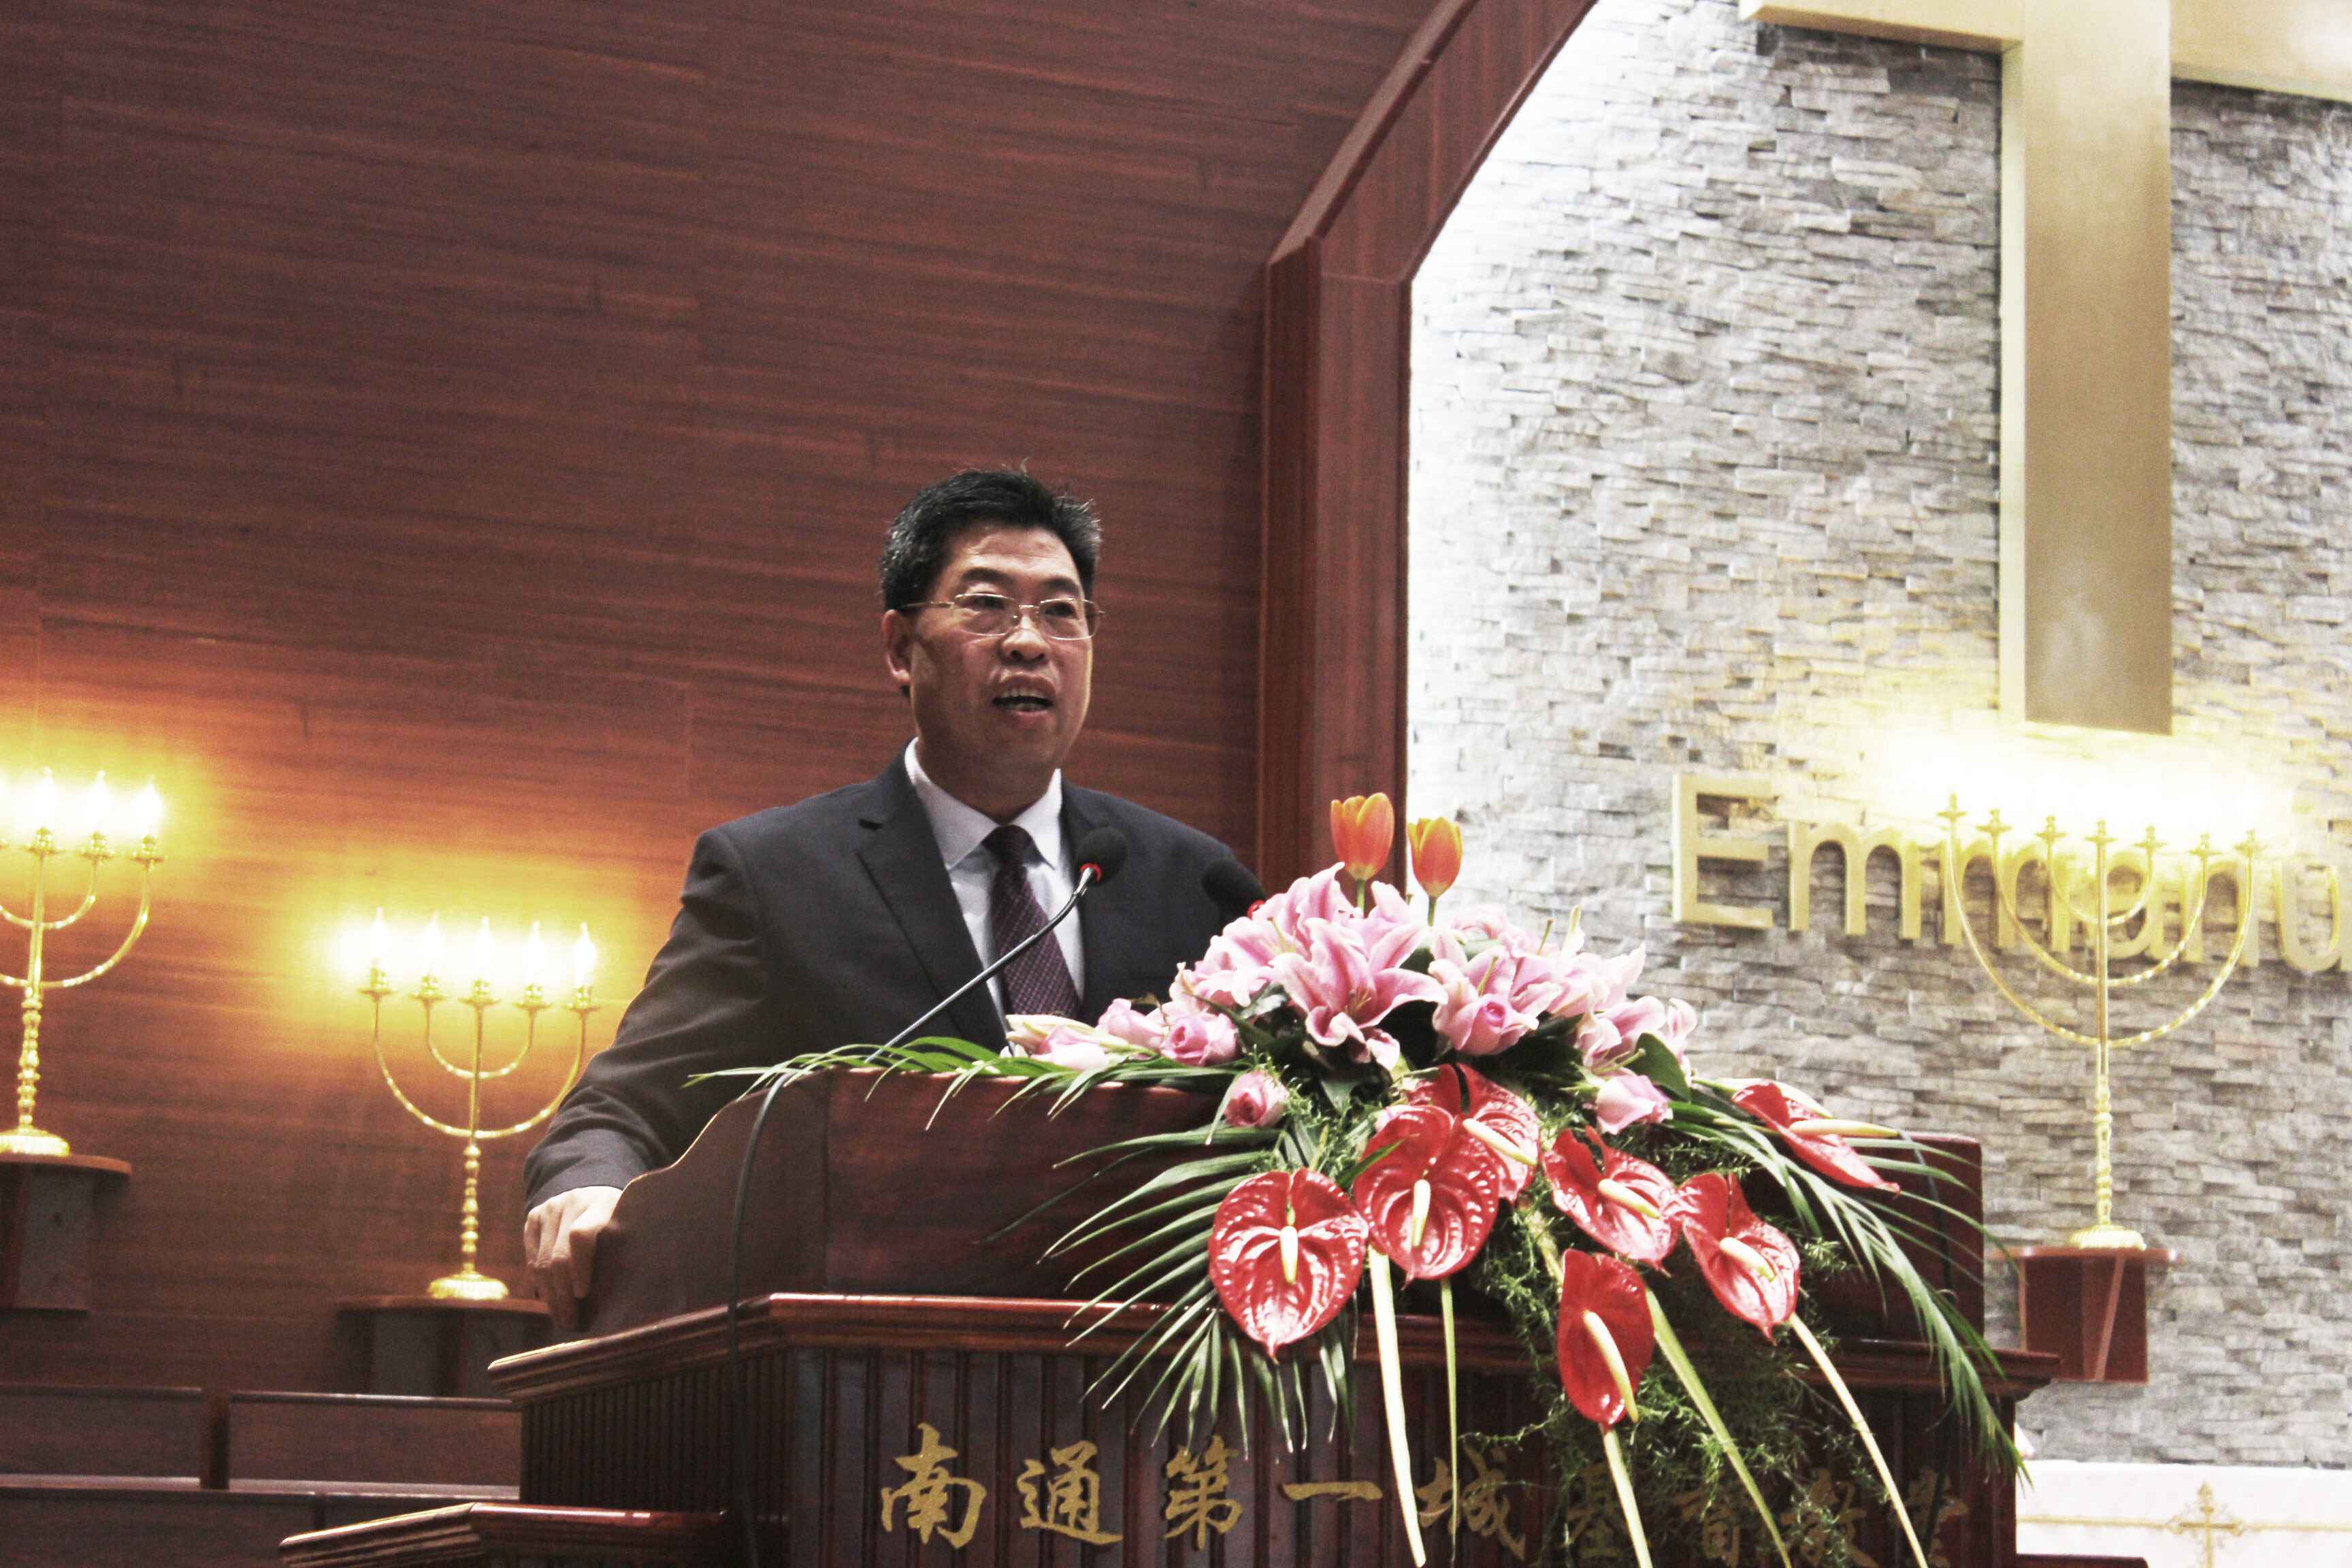 rev-zhang-keyun-preaches-the-sermon-in-diyicheng-church